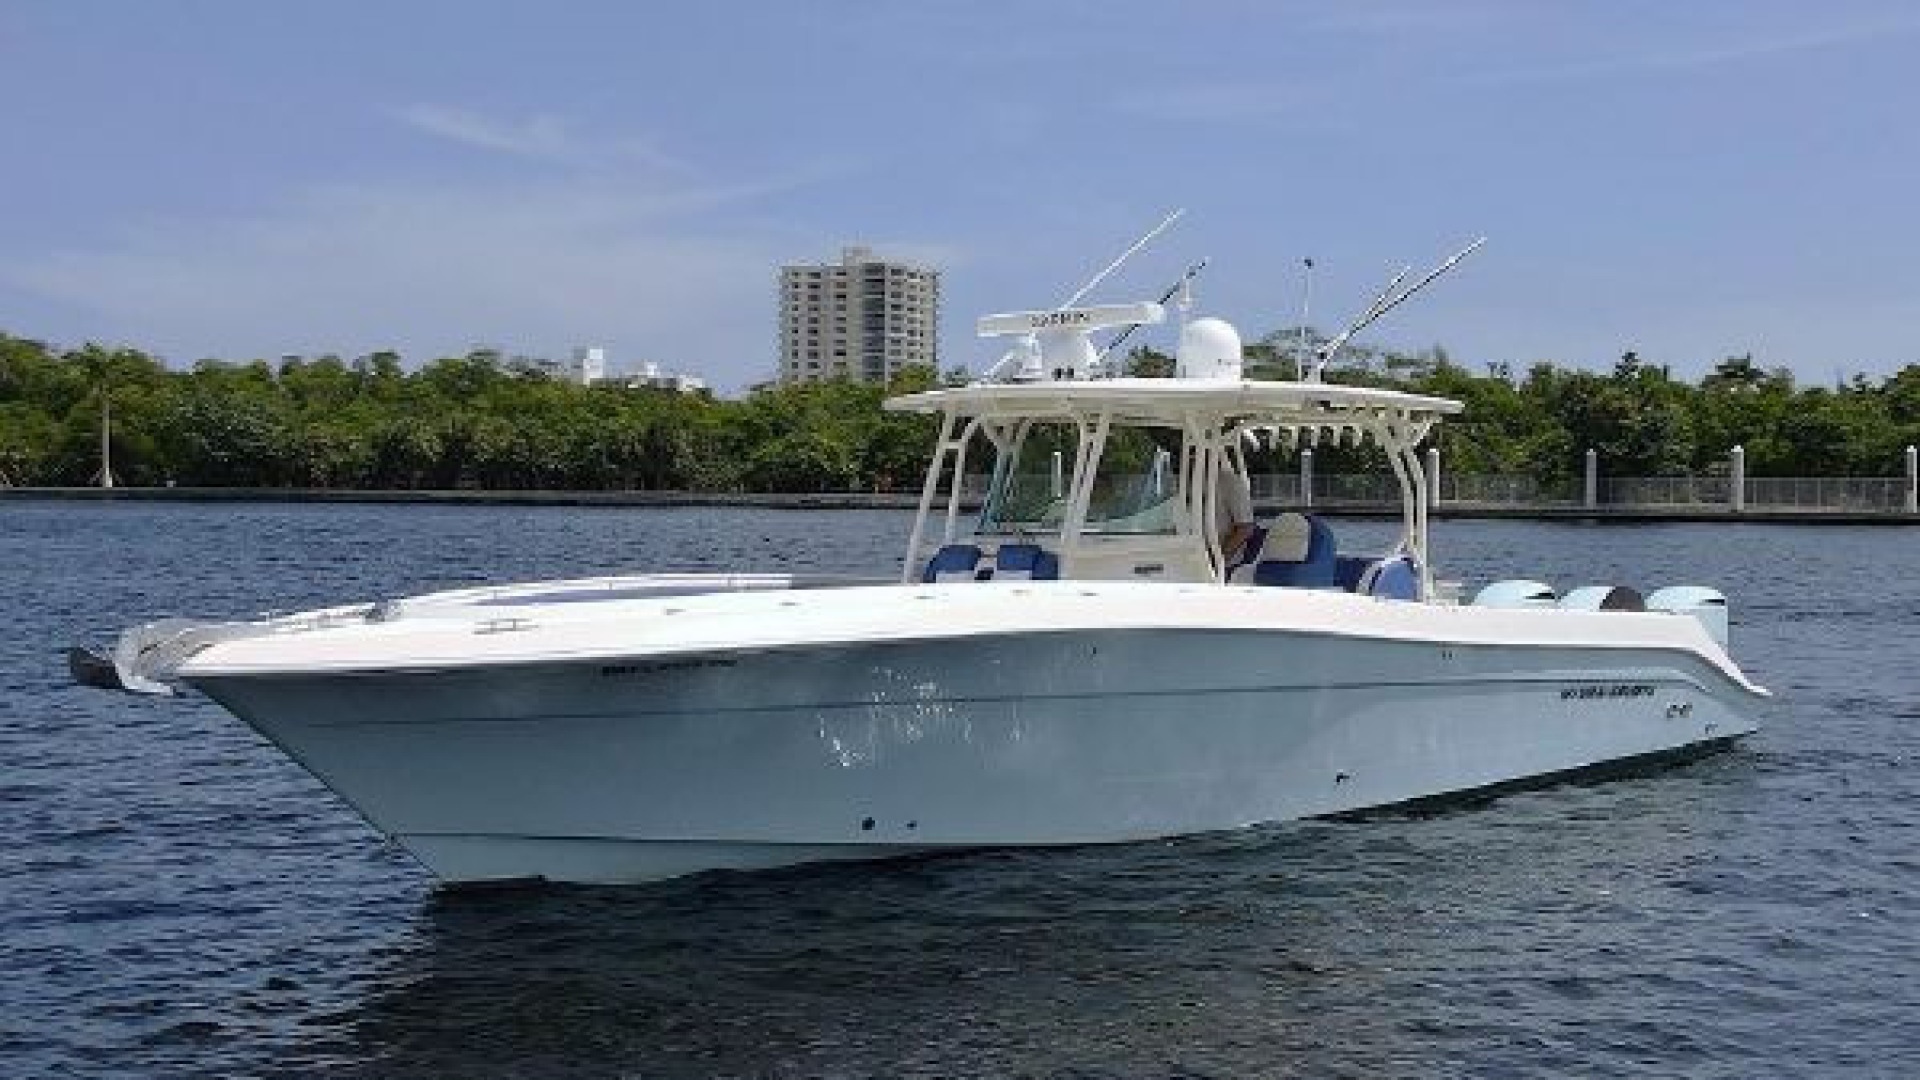 Hydra-Sports-42 Center Console 4200 SF 2011 -Fort Lauderdale-Florida-United States-1564112 | Thumbnail